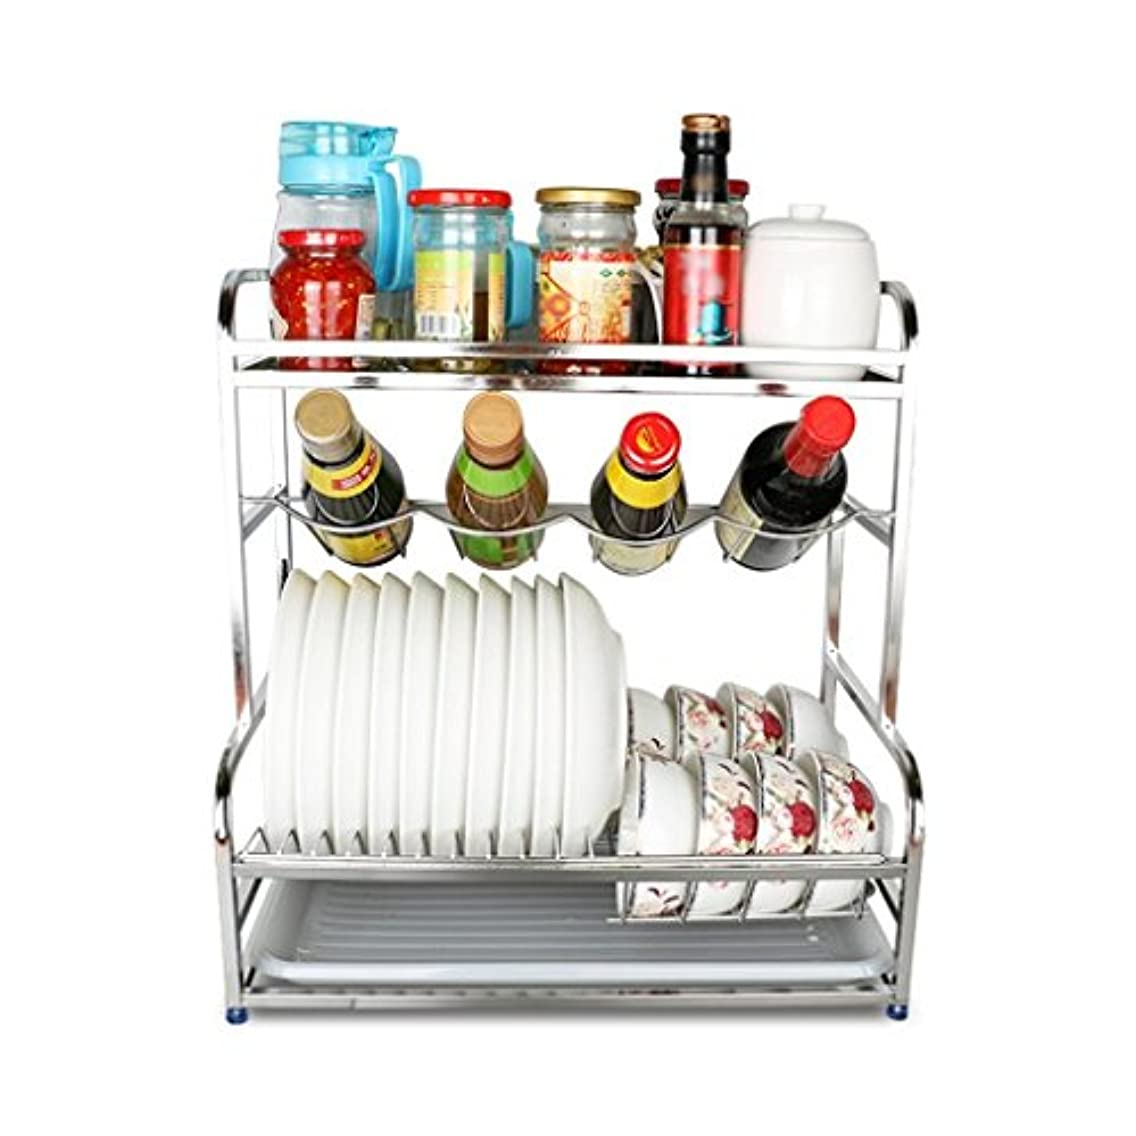 Standing Shelf Units for Living Room Kitchen Storage Kitchen Rack, 304 Stainless Steel Cutlery Rack, Condiment Rack Multifunctional Rack with Drain pan (Size : 432746)